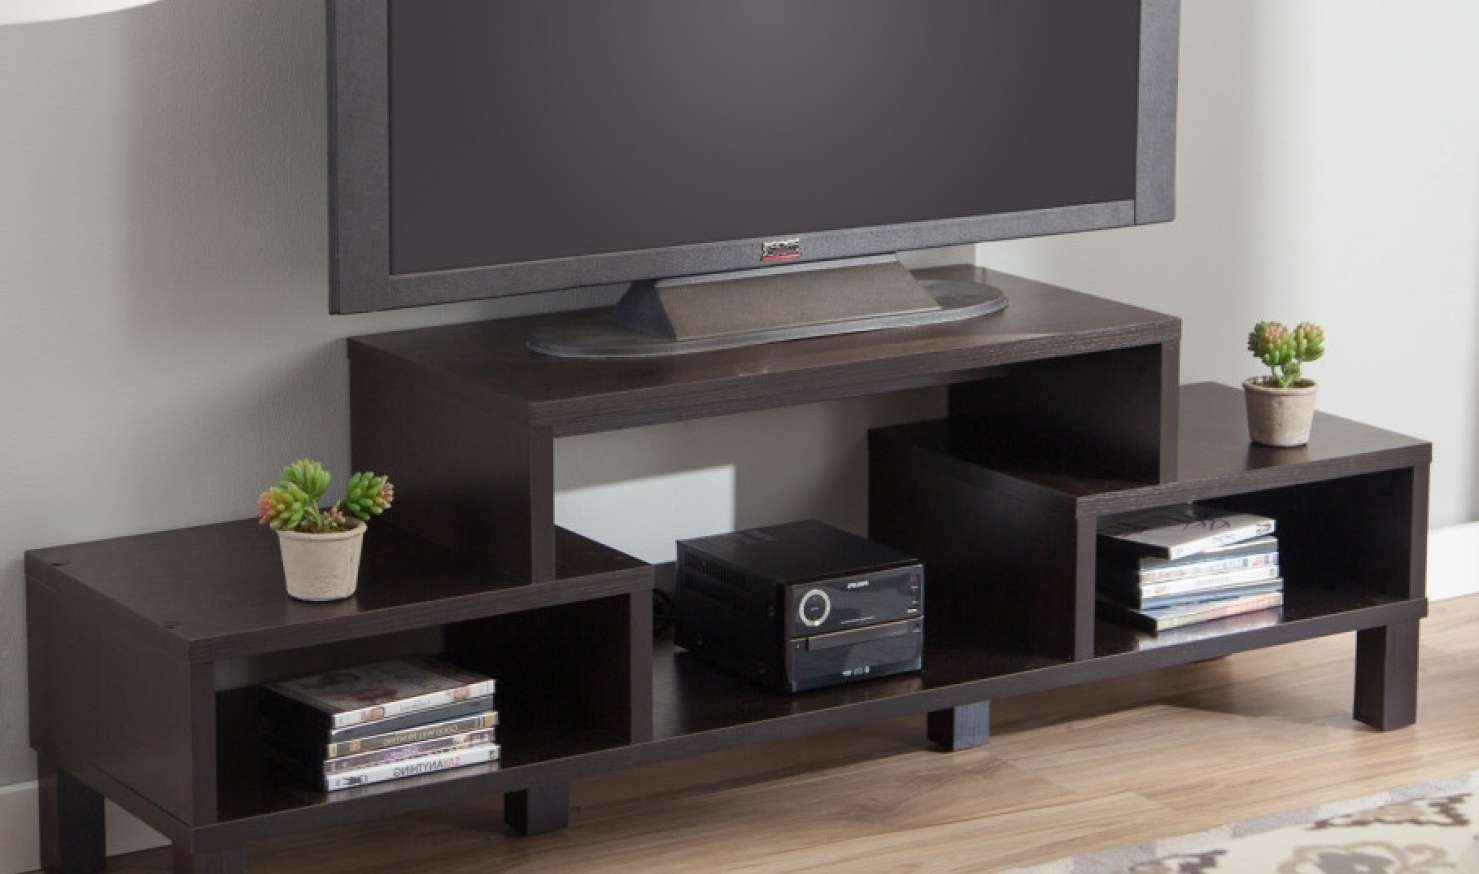 excellent tv stands new designs images simple design. Black Bedroom Furniture Sets. Home Design Ideas